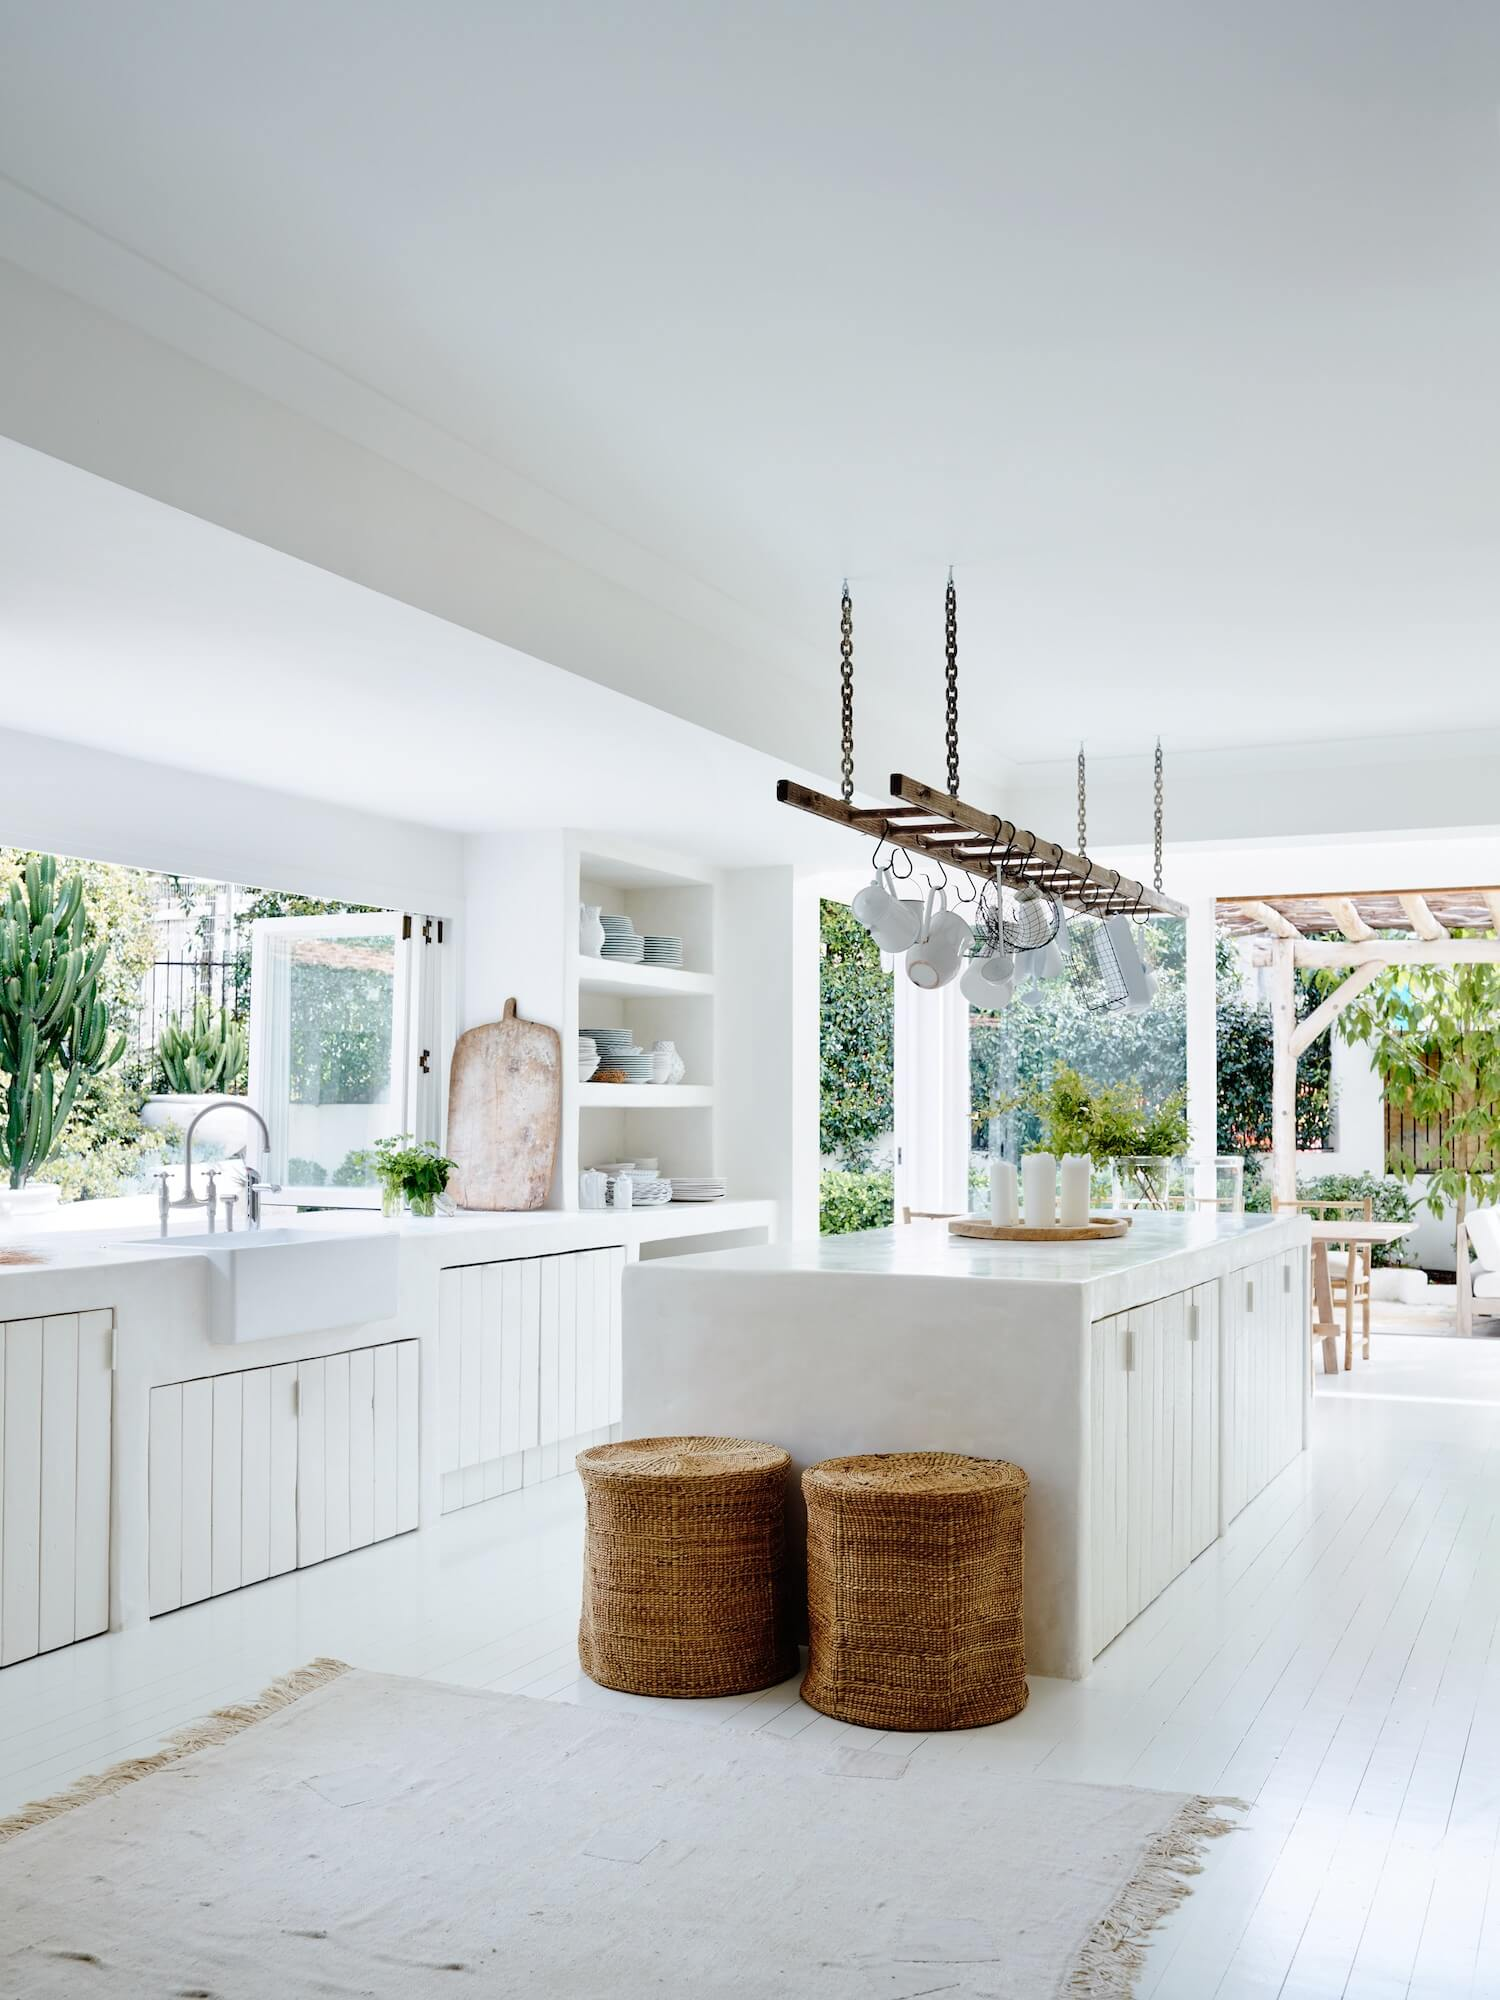 Hamptons Kitchens Why Hamptons Style Kitchens Are The Latest Interior Design Trend